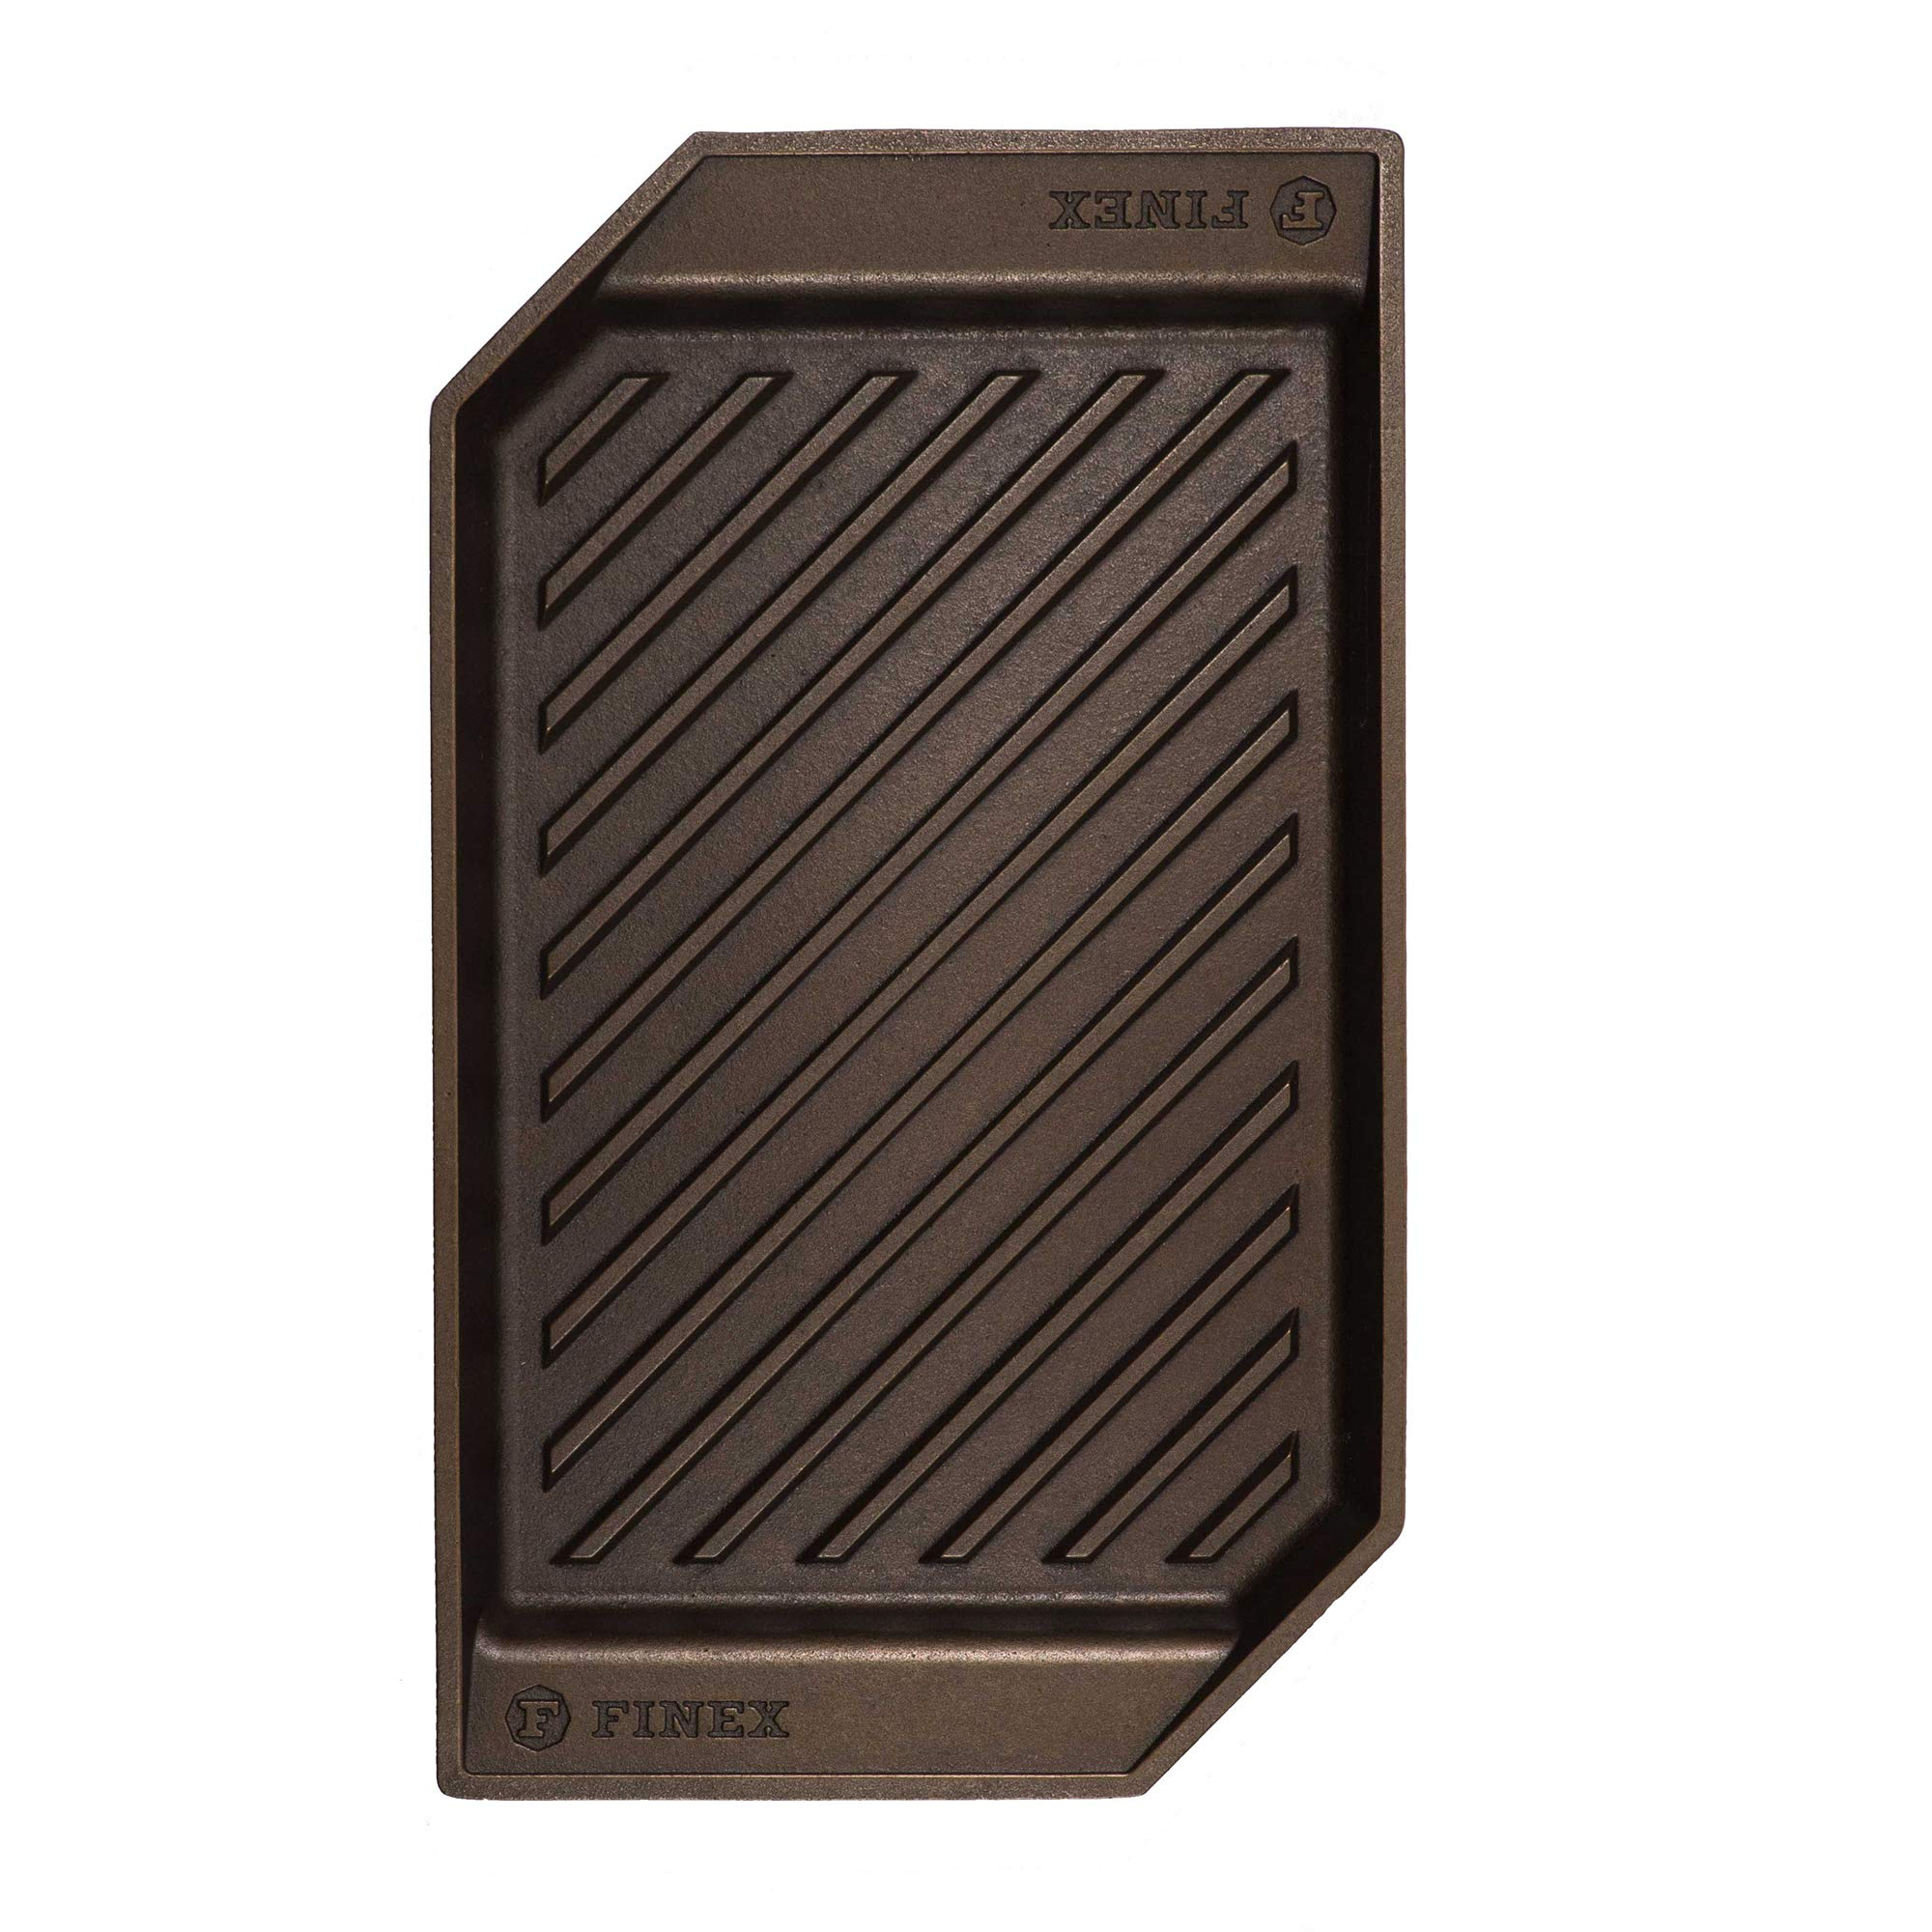 """FINEX 15"""" Cast Iron Lean Grill Pan, Modern Heirloom, Handcrafted in the USA, Pre-seasoned with Organic Flaxseed Oil"""